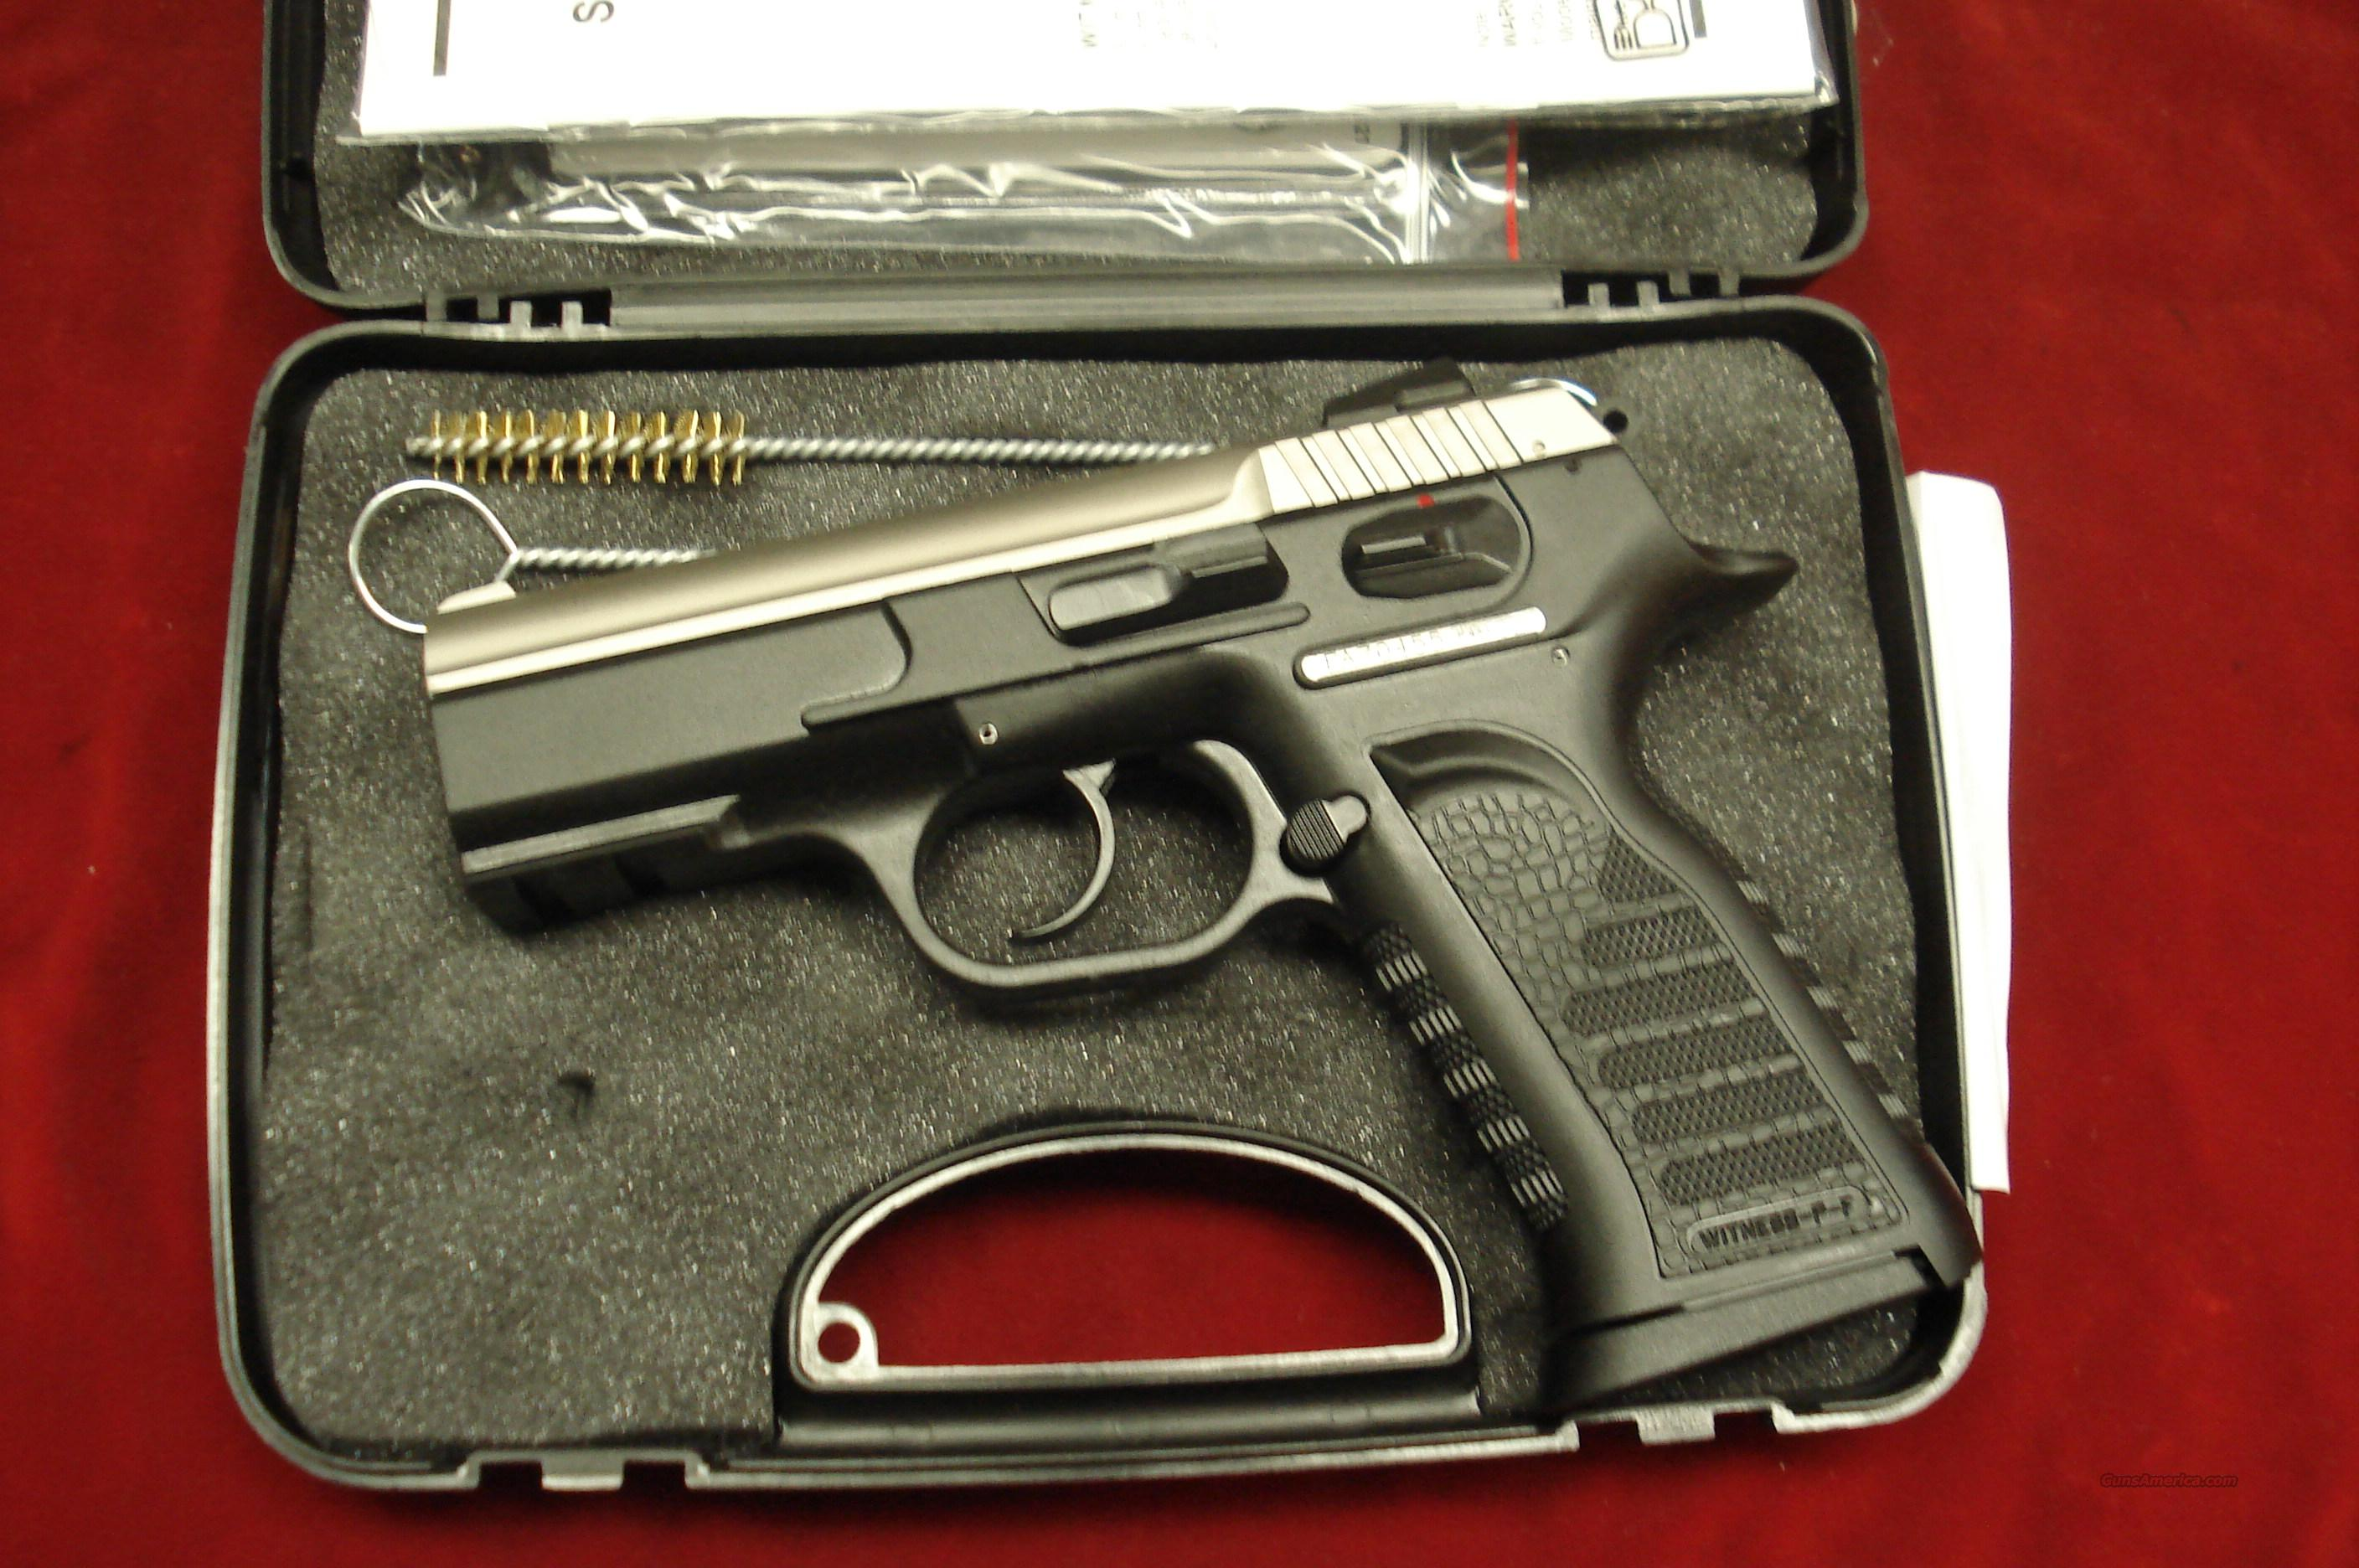 EAA TANFOGLIO WITNESS P.CARRY 45ACP CAL. STAINLESS NEW  Guns > Pistols > EAA Pistols > Other